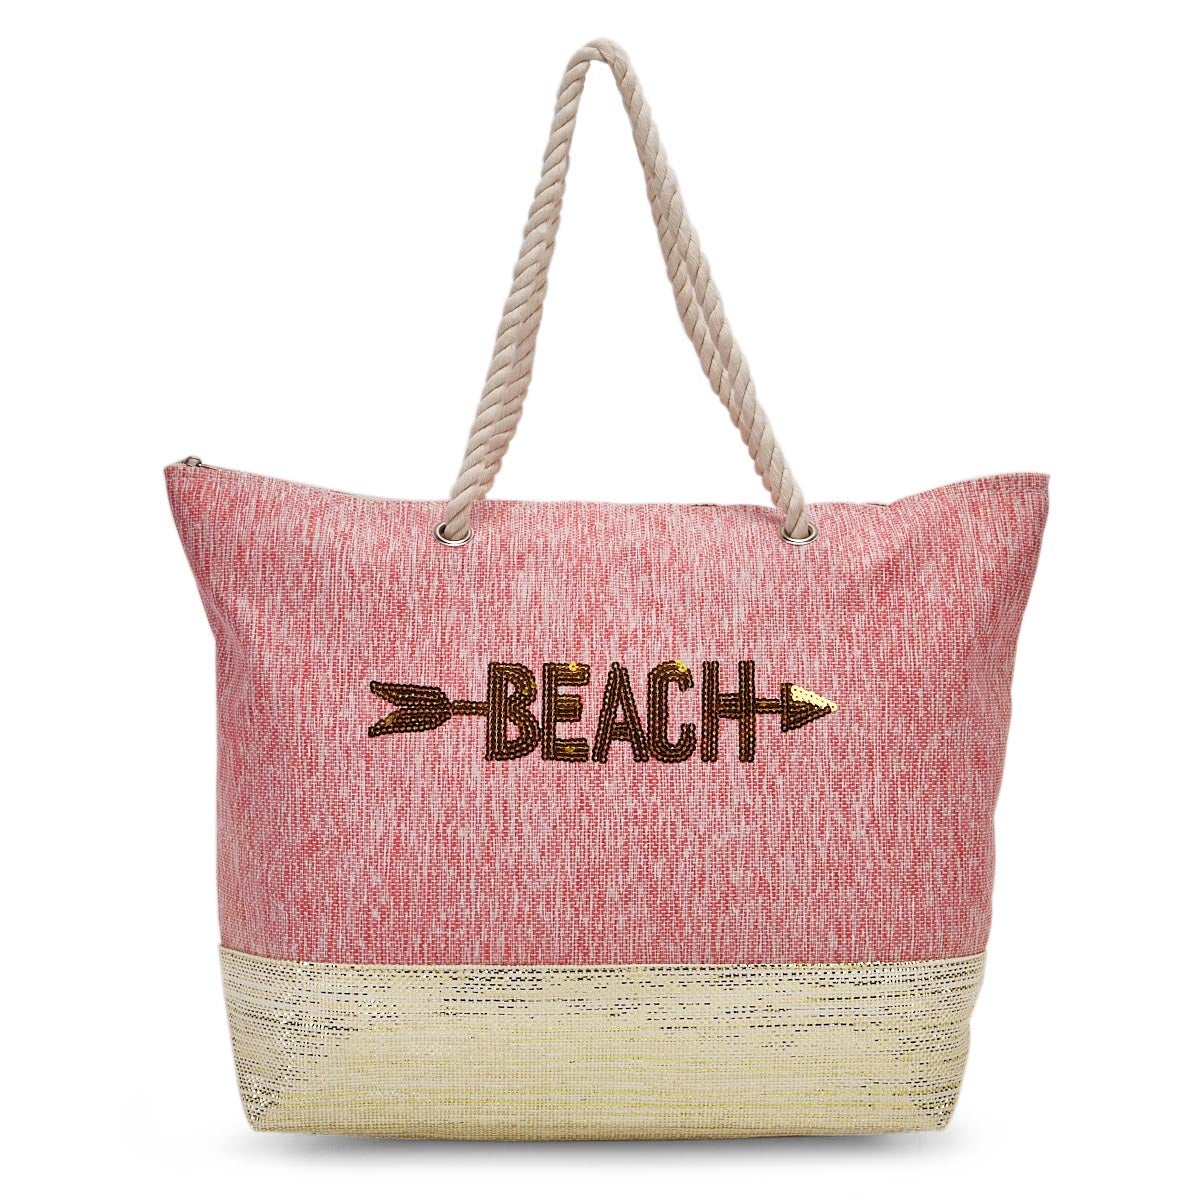 Lds red beach large tote hand bag